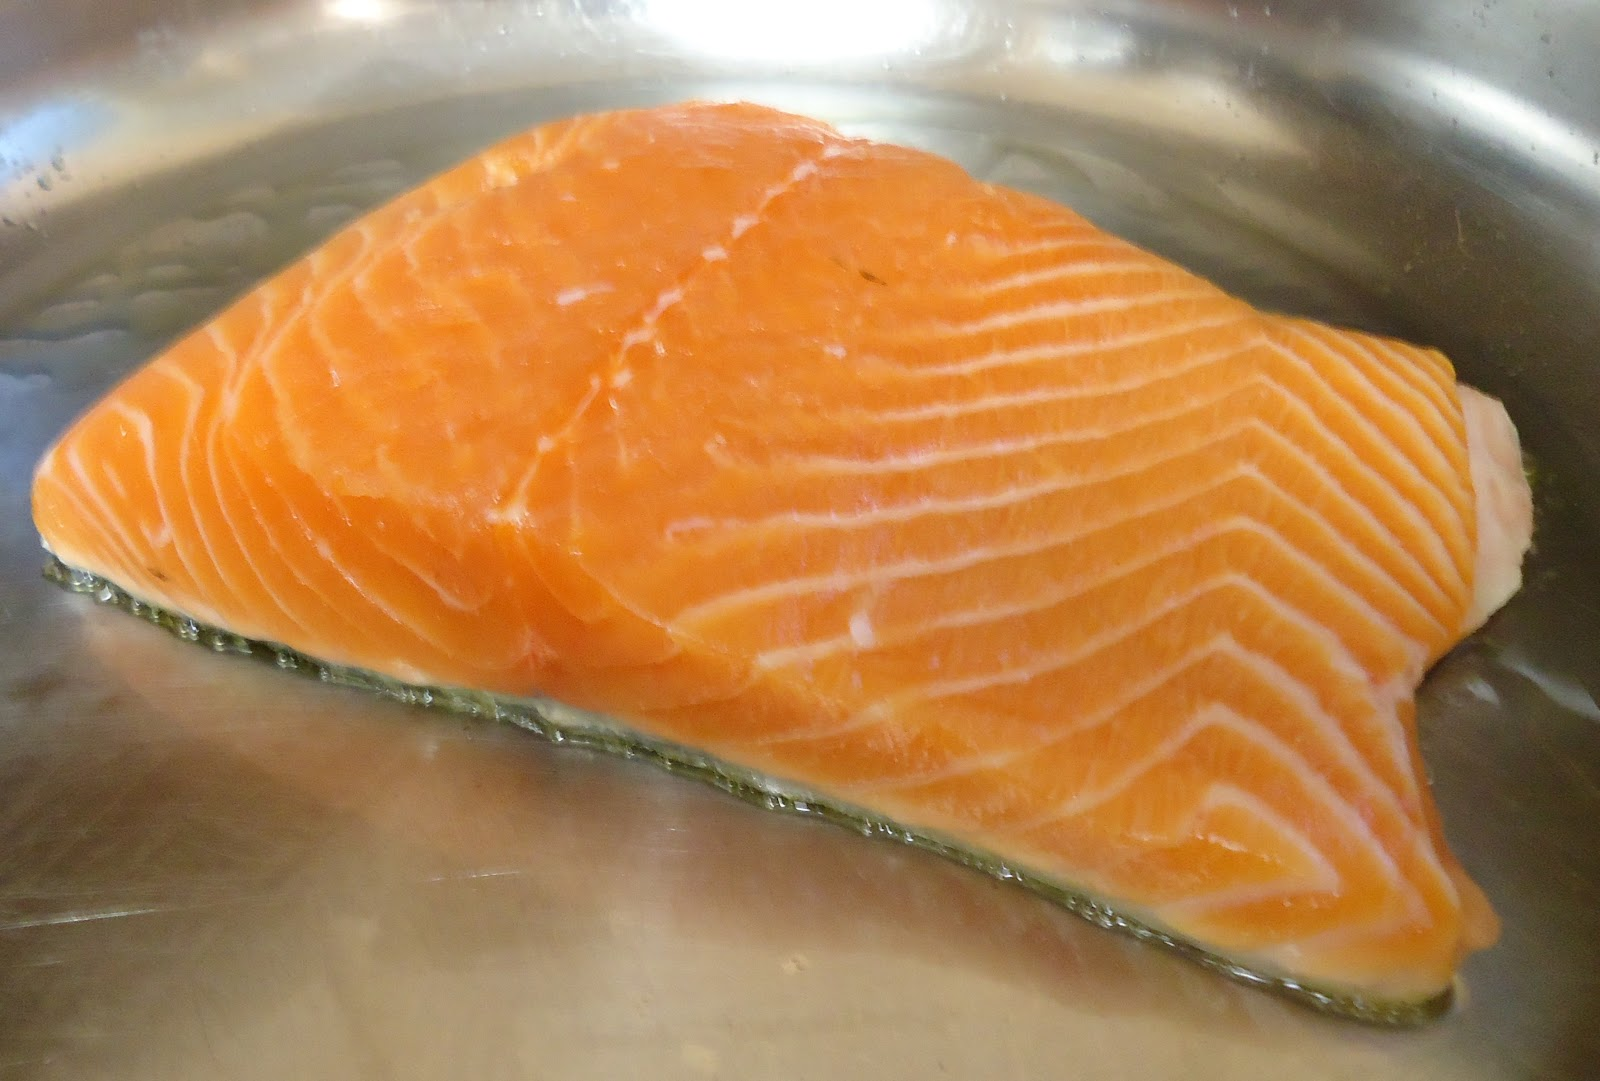 Flip Salmon Onto A Plate Skin Side Up I Use A Thin Stainless Steal Spatula  But You Could Also Use A Butter Knife Or Some Other Thin Metal Utensil